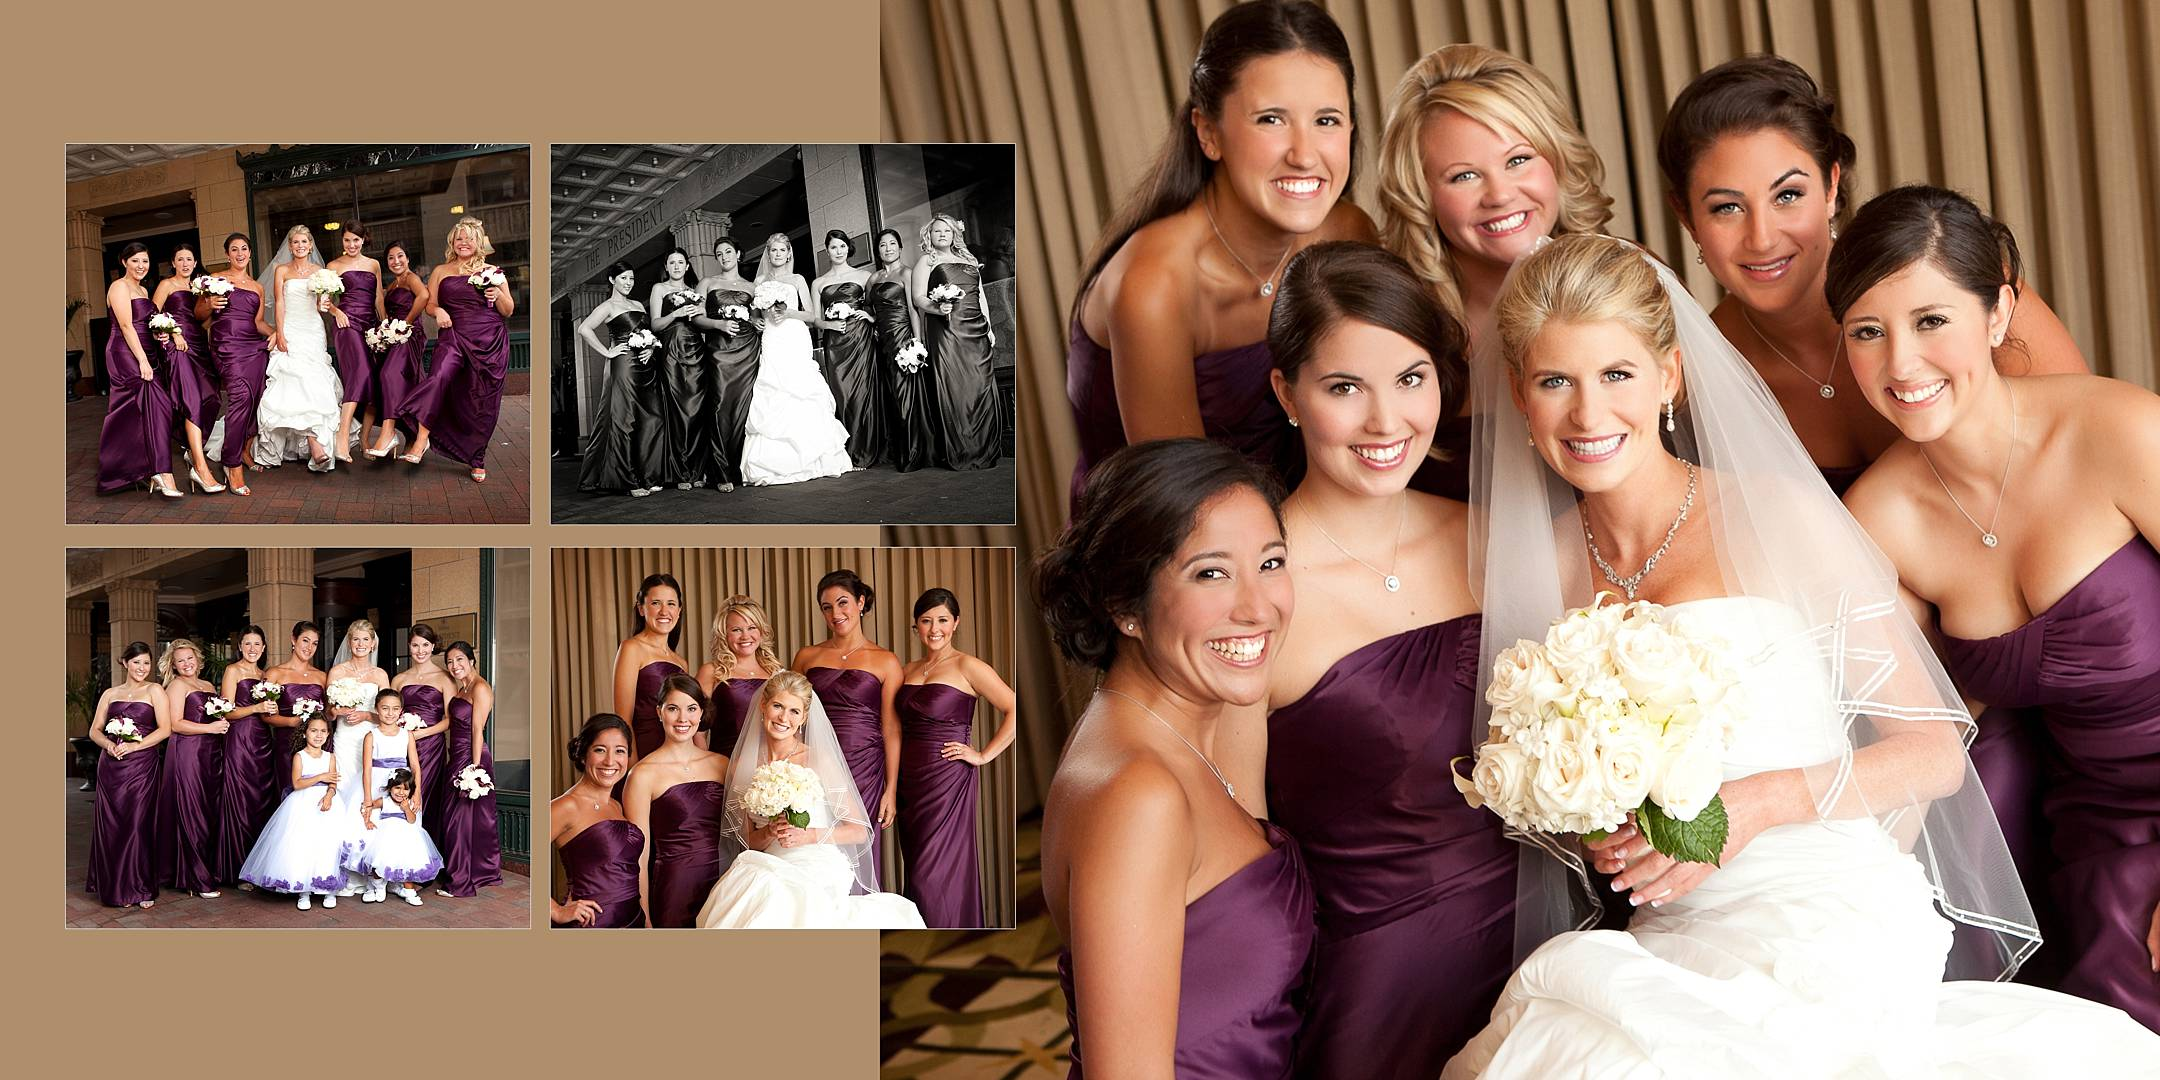 schmidt-photo-wedding-photography-chicago_2294